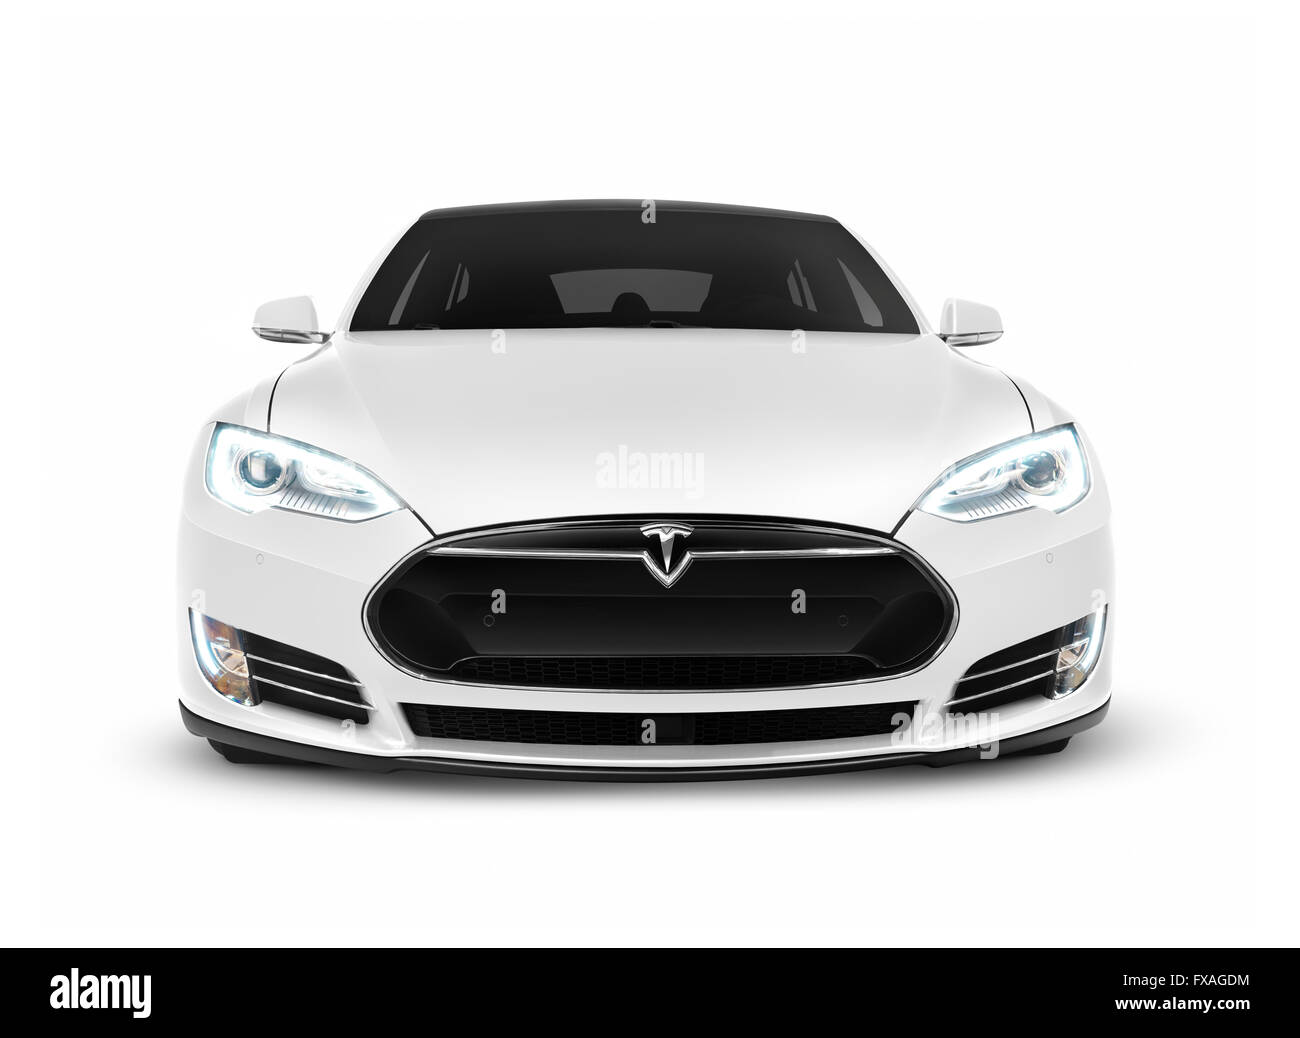 2017 tesla model s luxury electric car front view stock photo 102265344 alamy. Black Bedroom Furniture Sets. Home Design Ideas